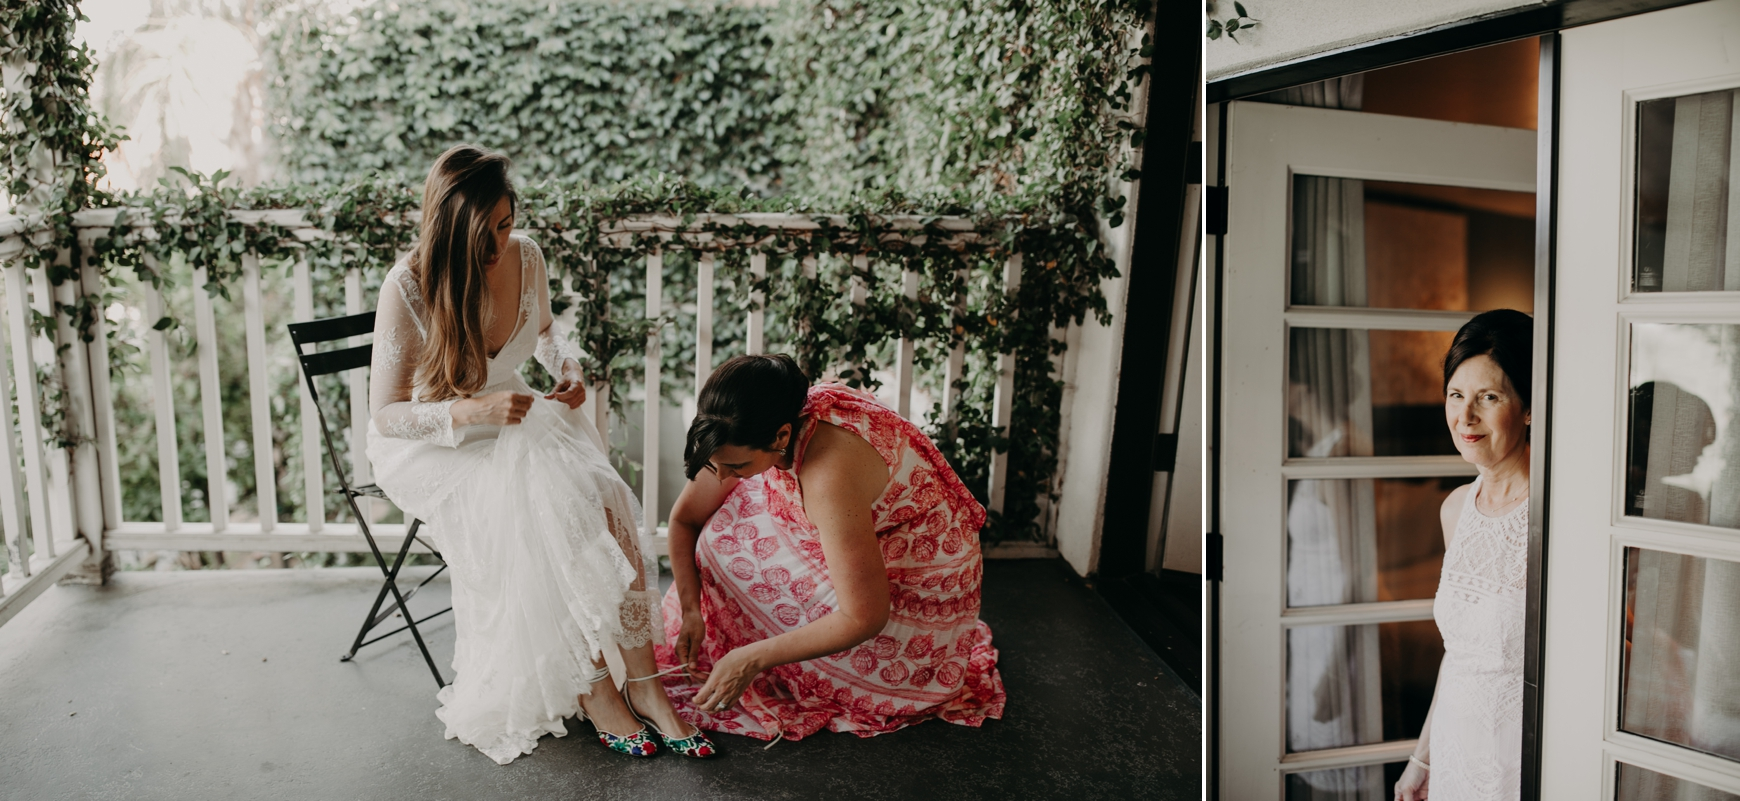 The Colony Palms Hotel Palm Springs Wedding Jaclyn & Tyson Emily Magers Photography-93.jpg